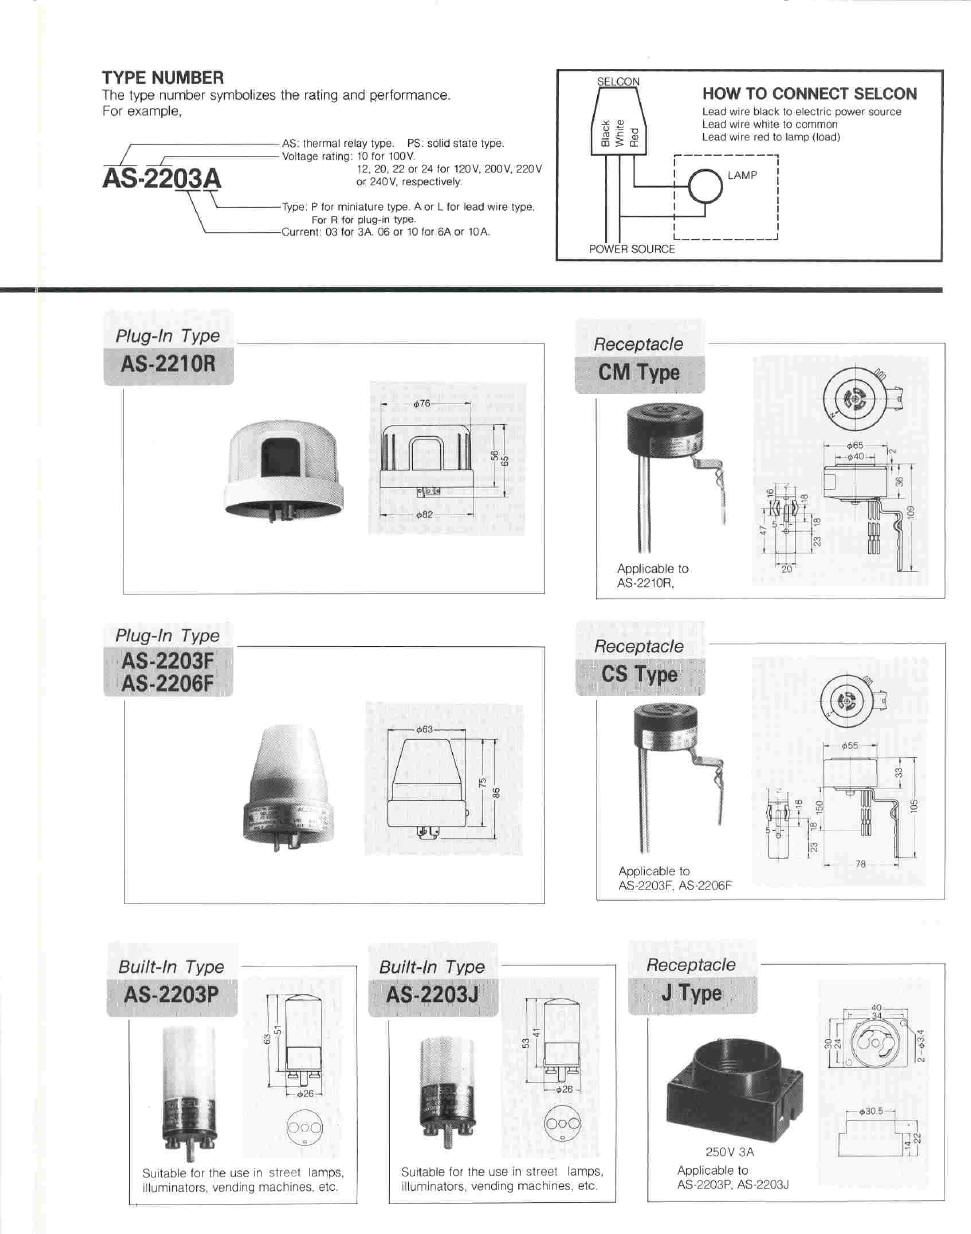 Selcon Photocell Wiring Diagram 31 Images Lighting Light Sensor Switch Selcon1 Photo Control At